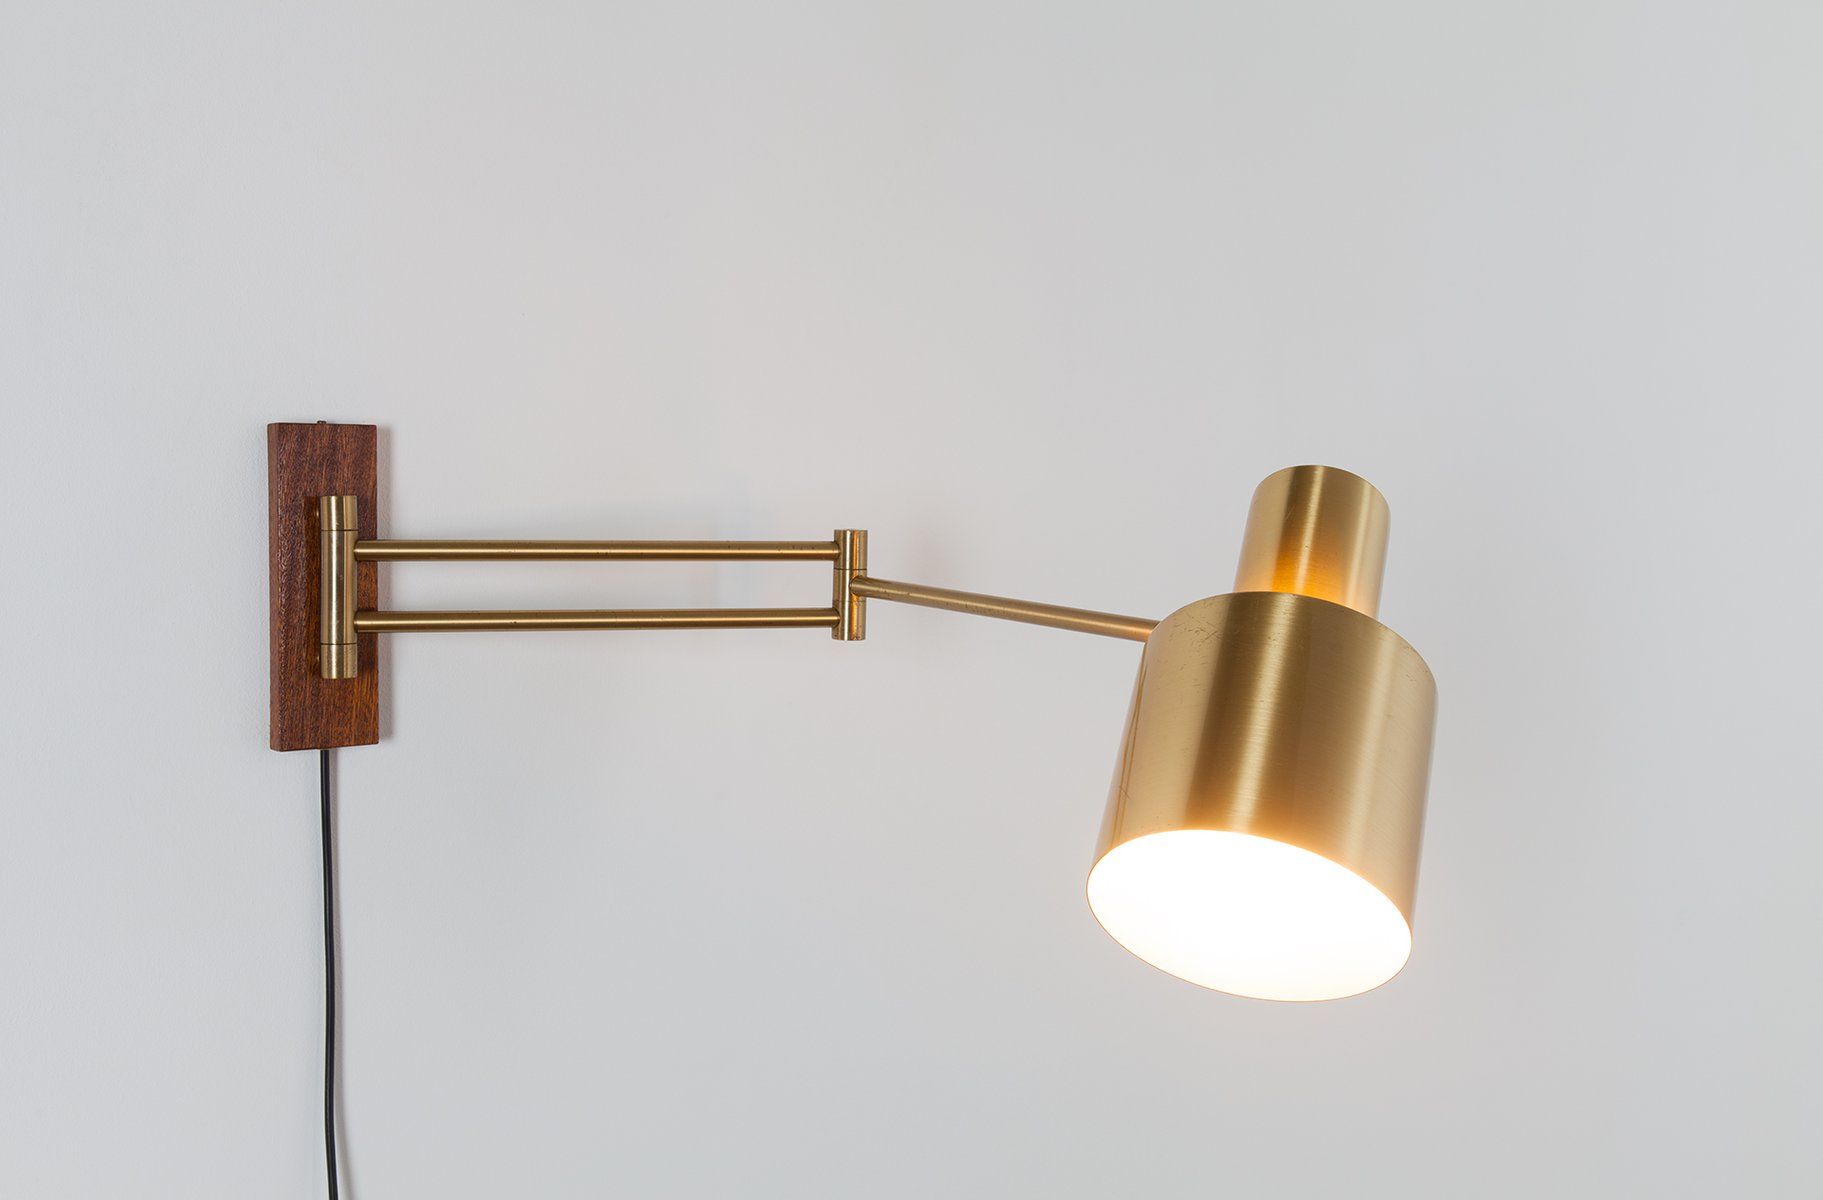 Wall Lights Extendable : Horisont Extendable Wall Light by Jo Hammerborg for Fog & M?rup, 1960s for sale at Pamono